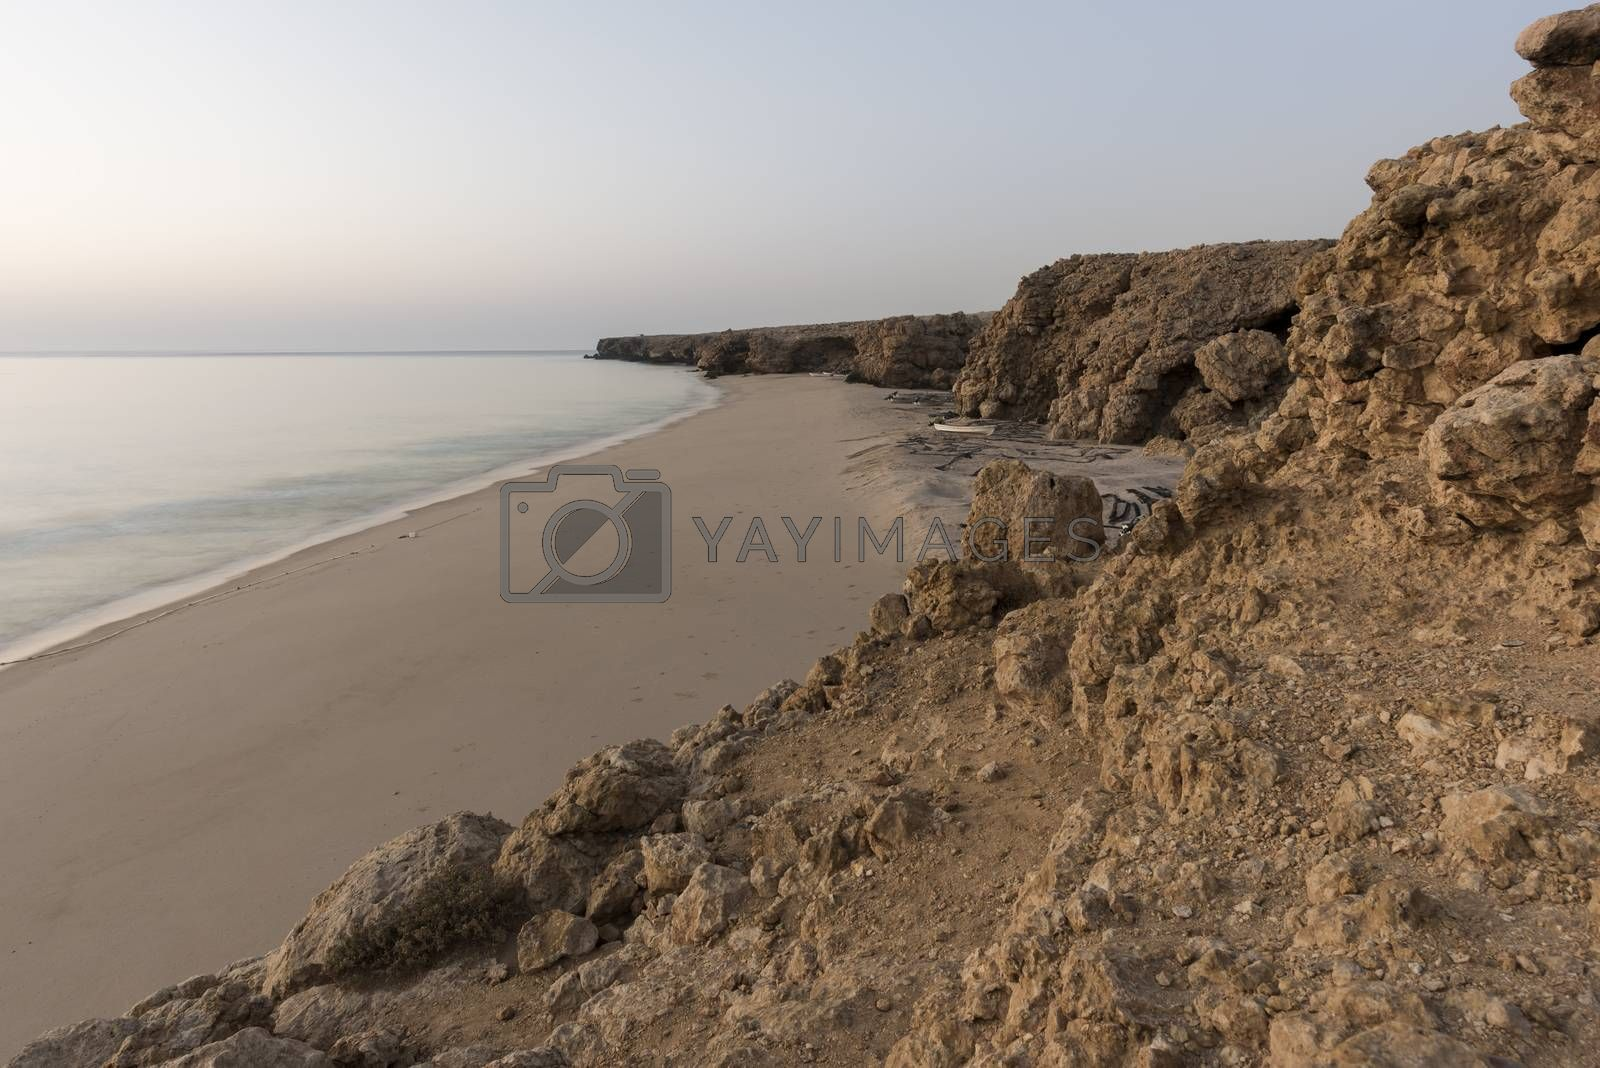 Wild beach at the coat of Ras Al Jinz, Sultanate of Oman. It is a place for fishermen to put their boats and repair their nets.